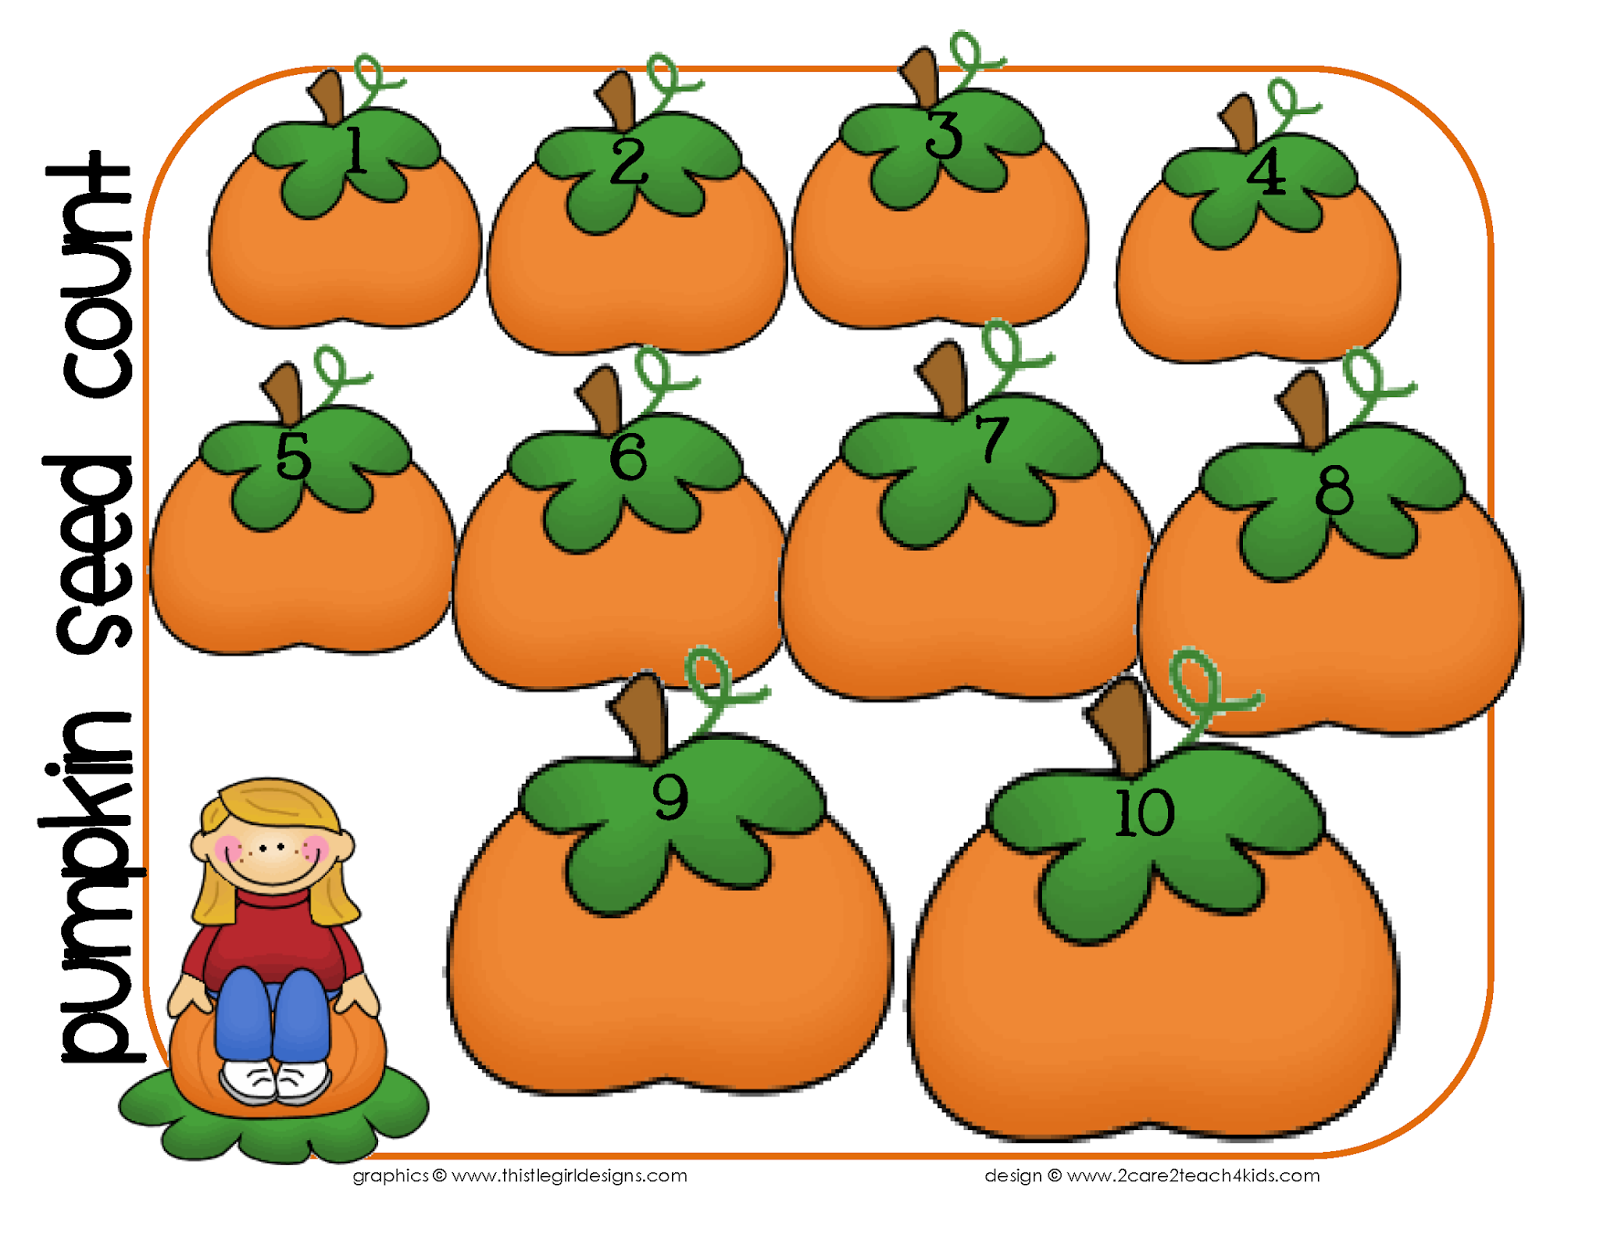 2care2teach4kids: Pumpkin Picking Time! A Patch Of Free